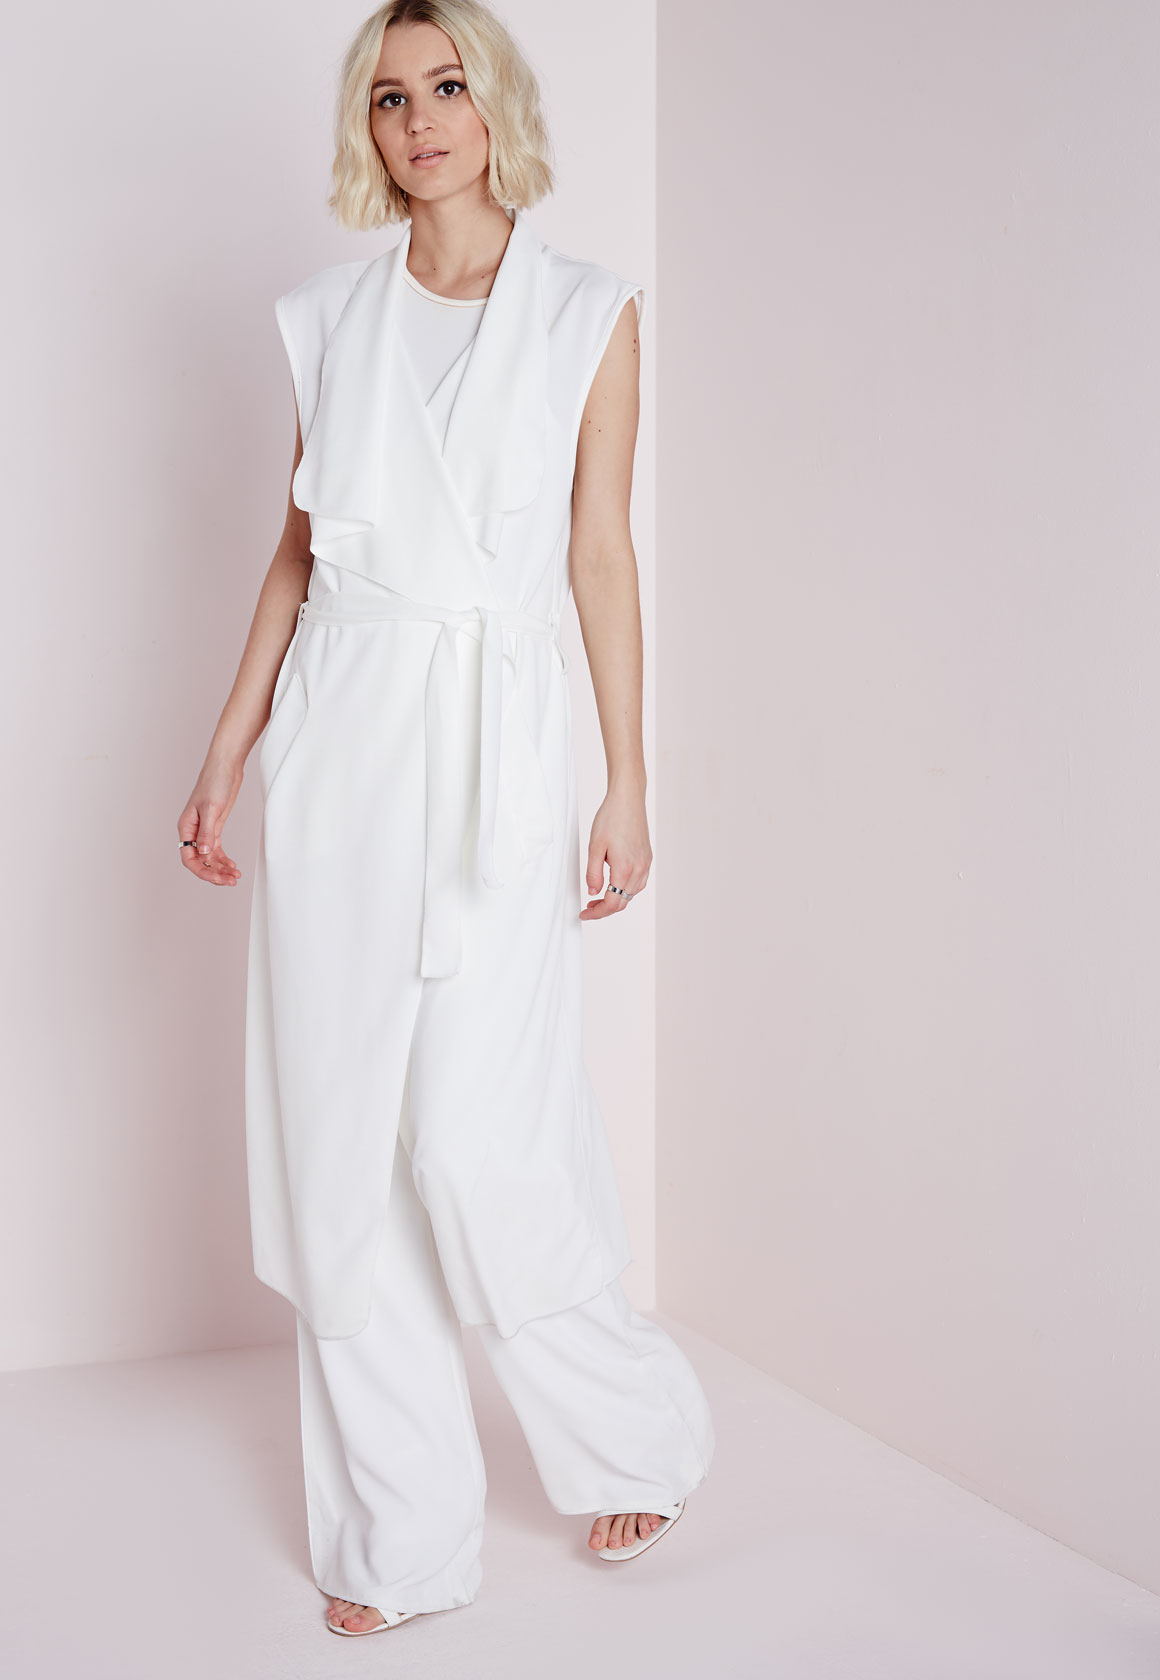 a0ab0e580024d6 Lyst - Missguided Sleeveless Belted Waterfall Duster Coat White in White